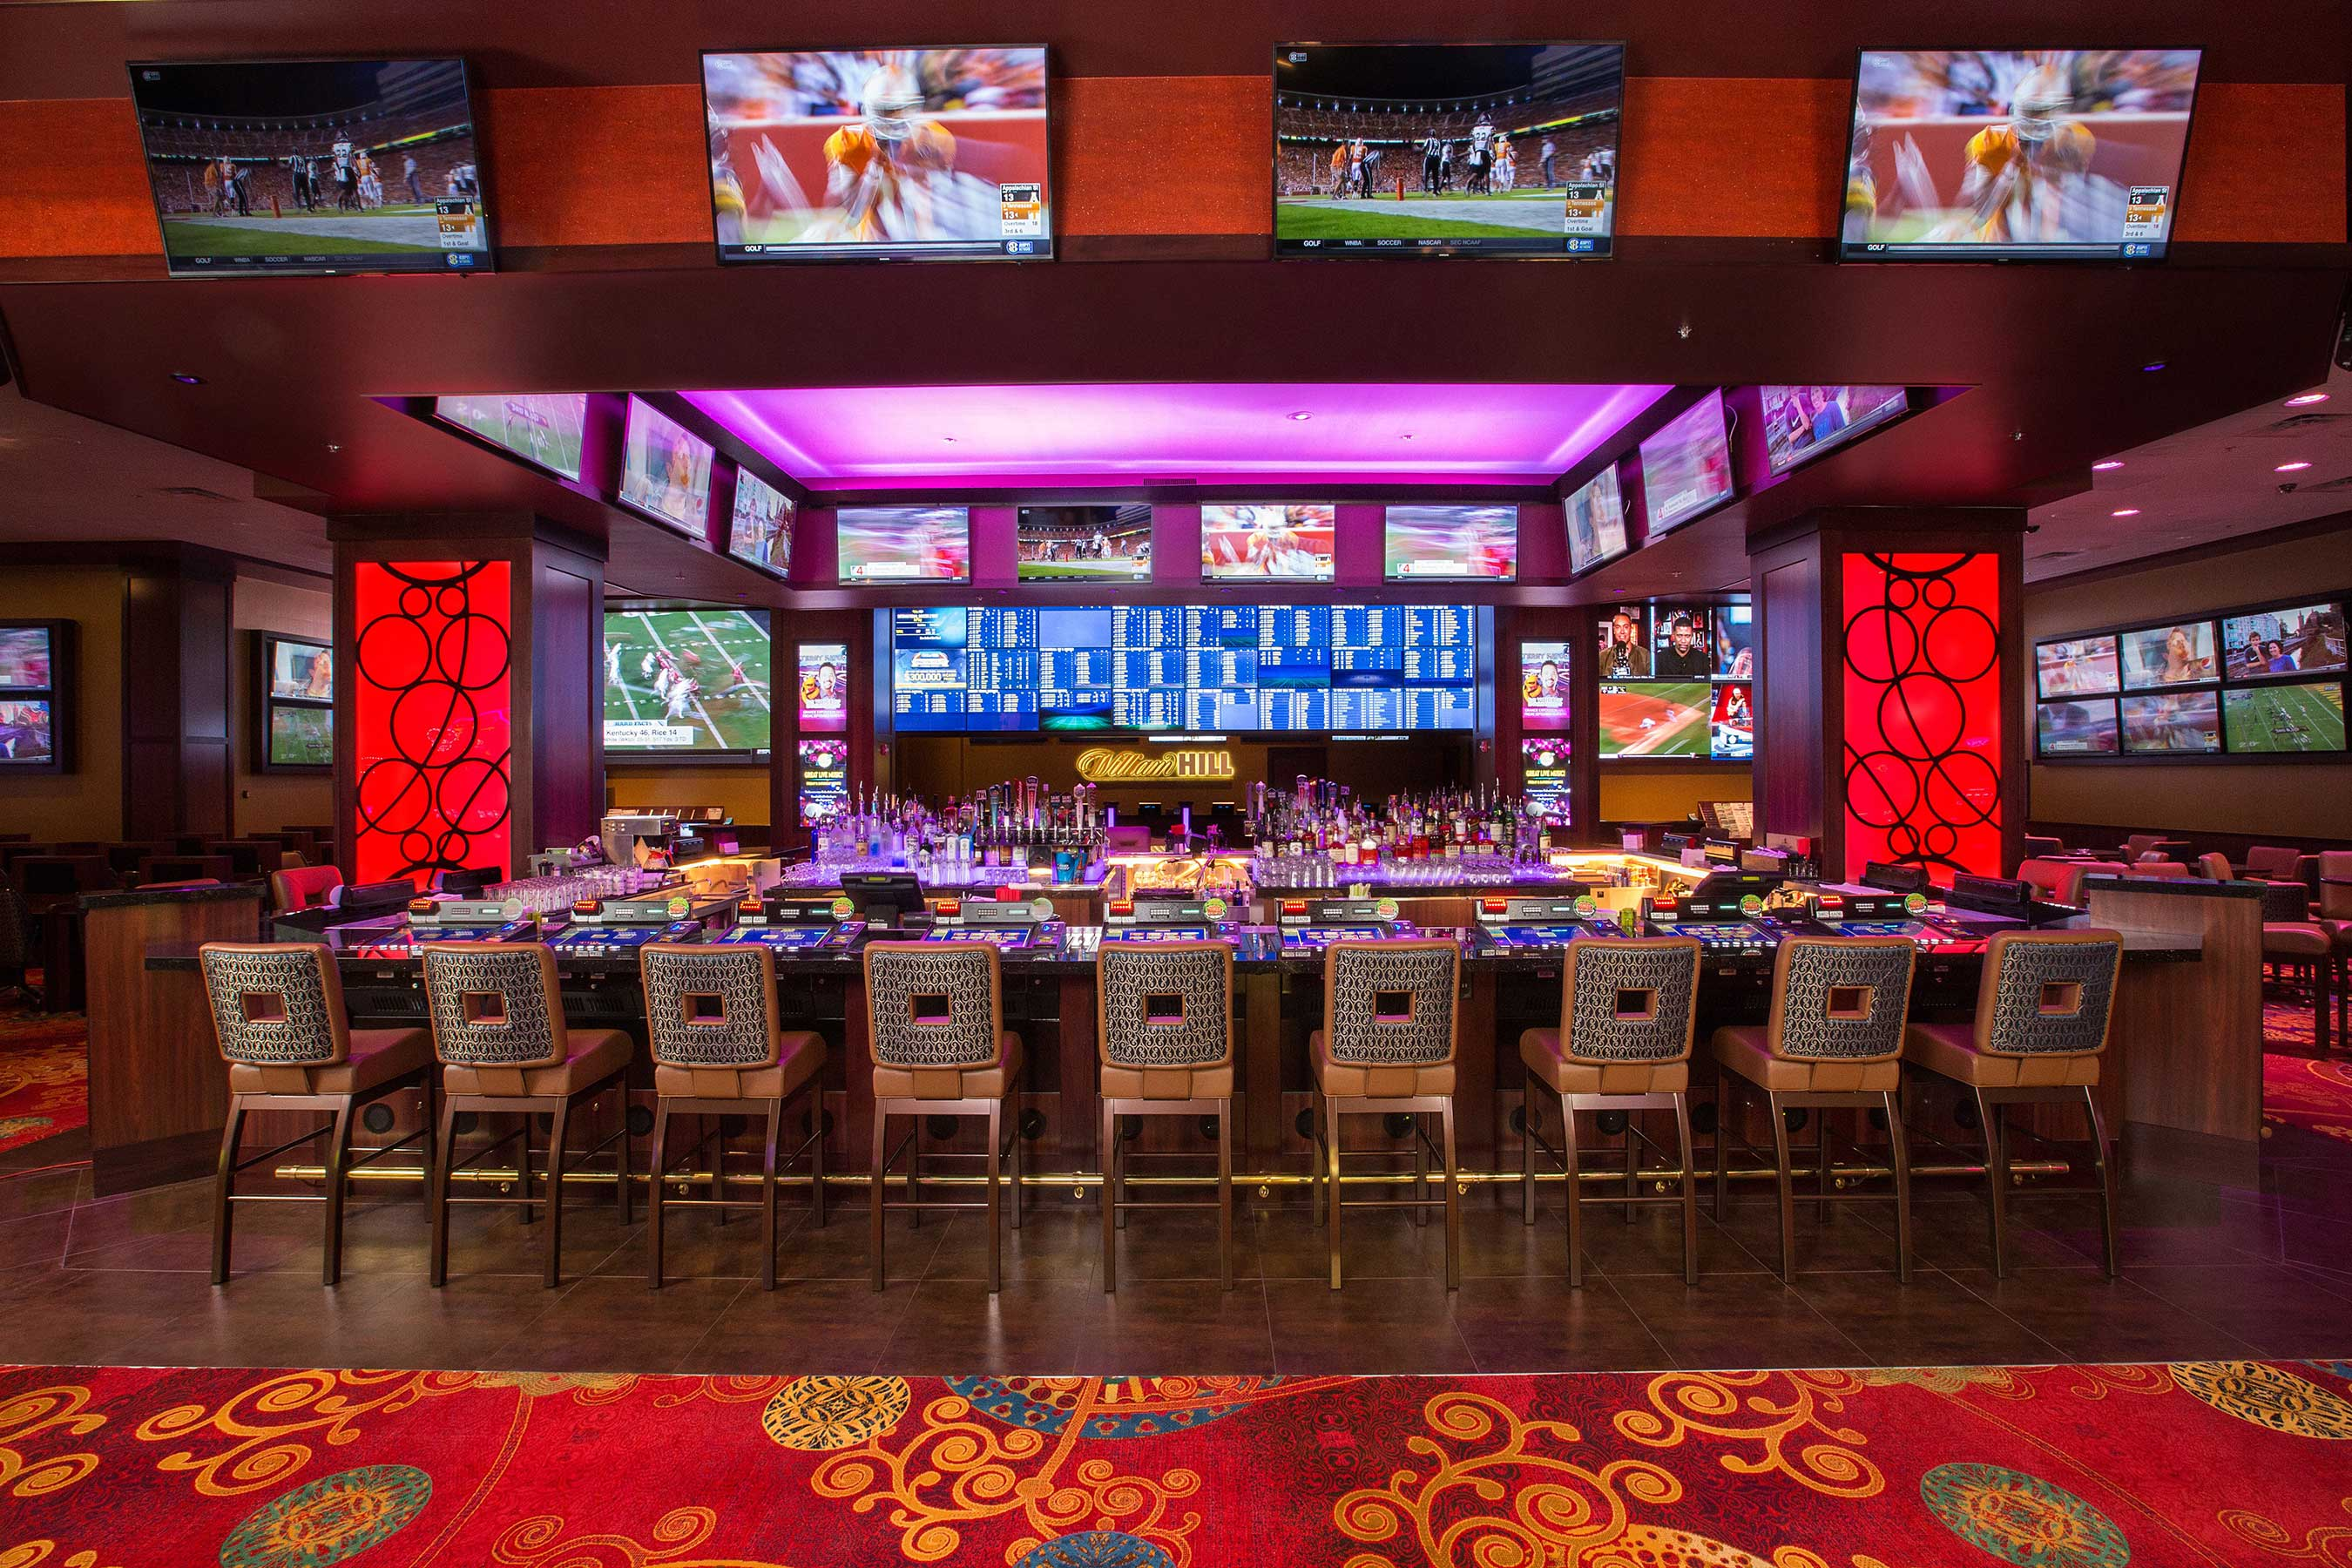 The all-new 7,200 square-foot William Hill Race and Sports Book at Silver Legacy, a $2 million project, opened Sept. 8 just in time for football season.